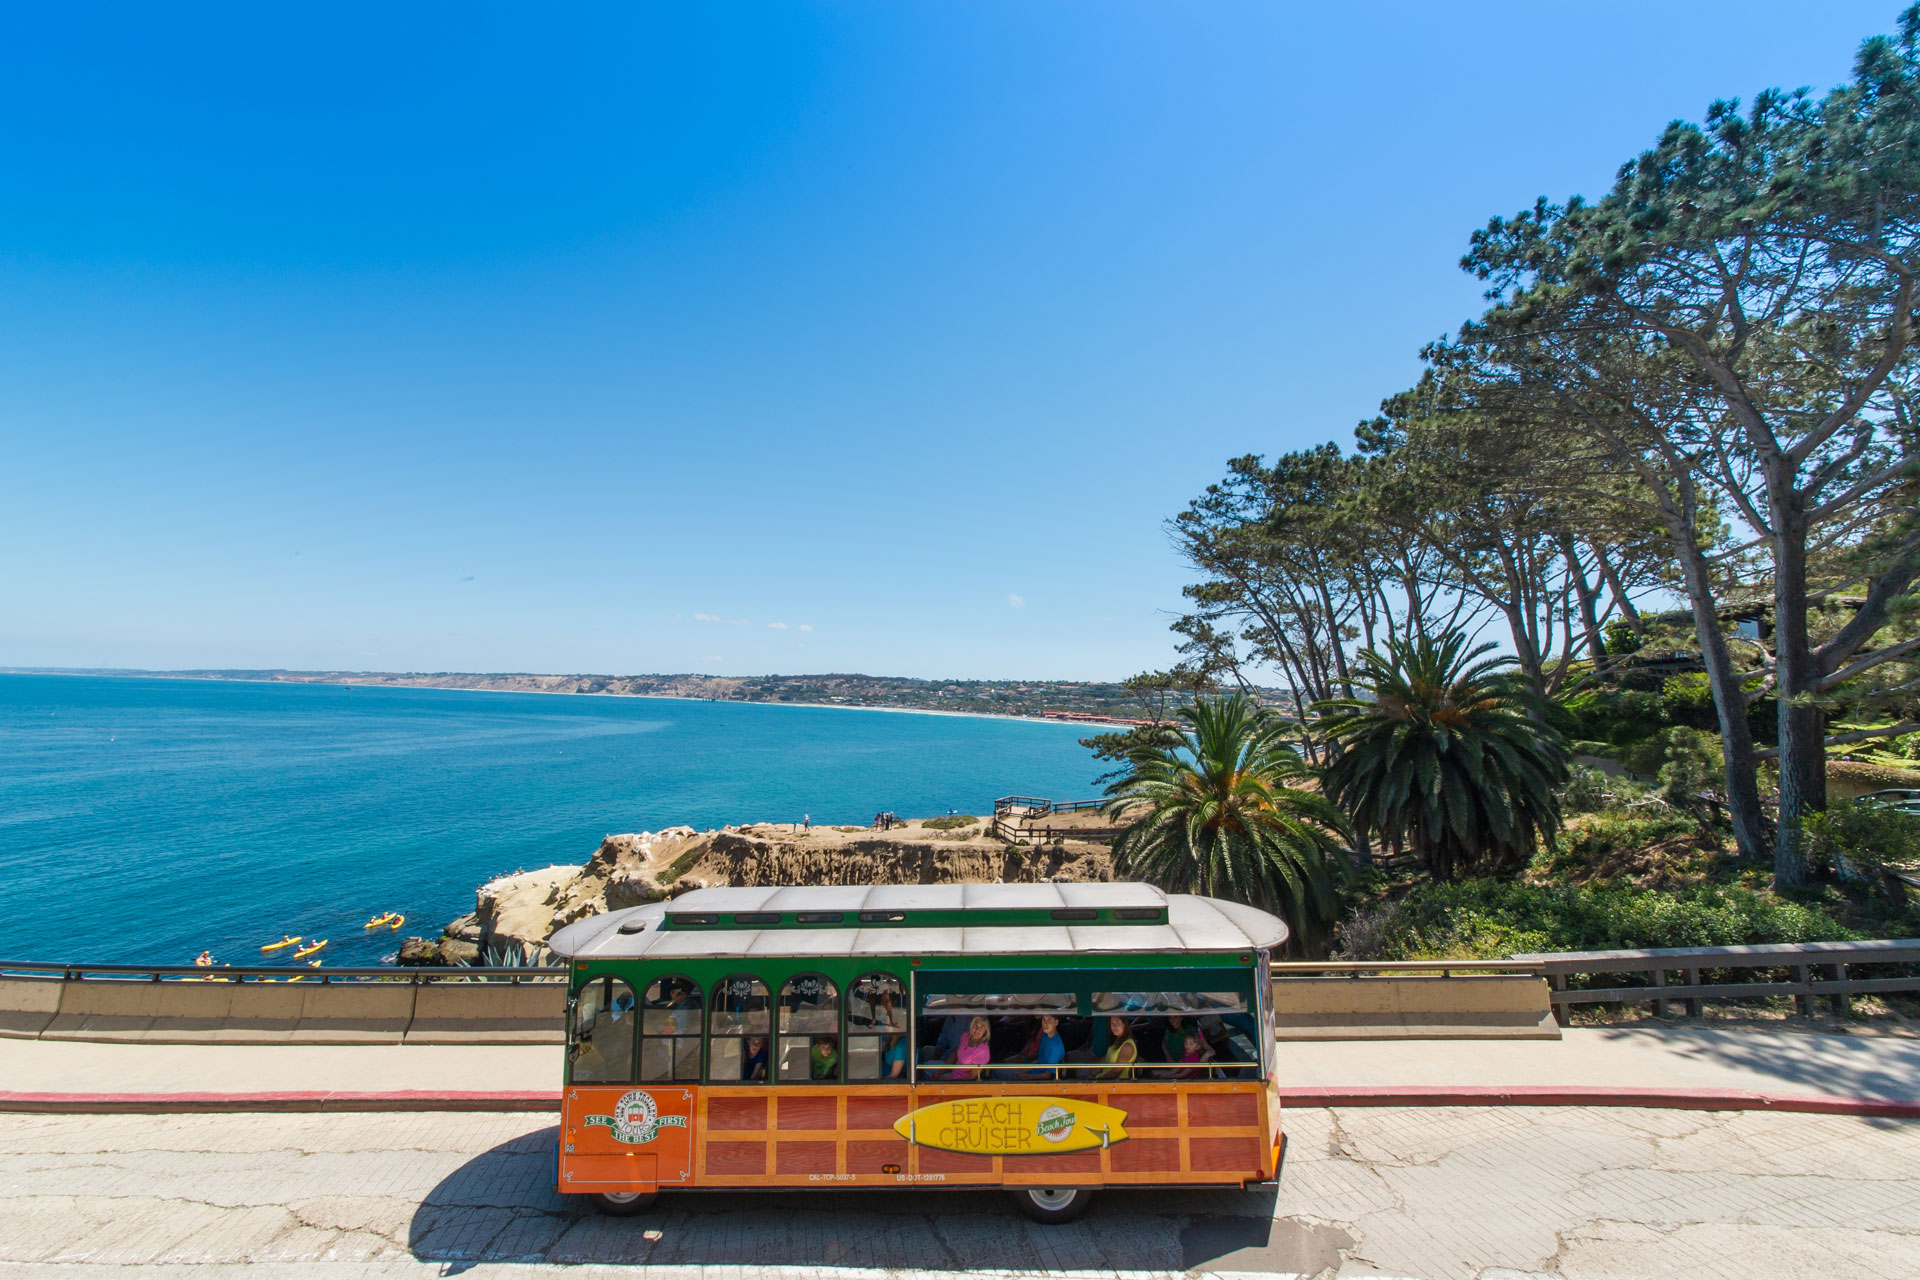 La Jolla Beaches Tour Package